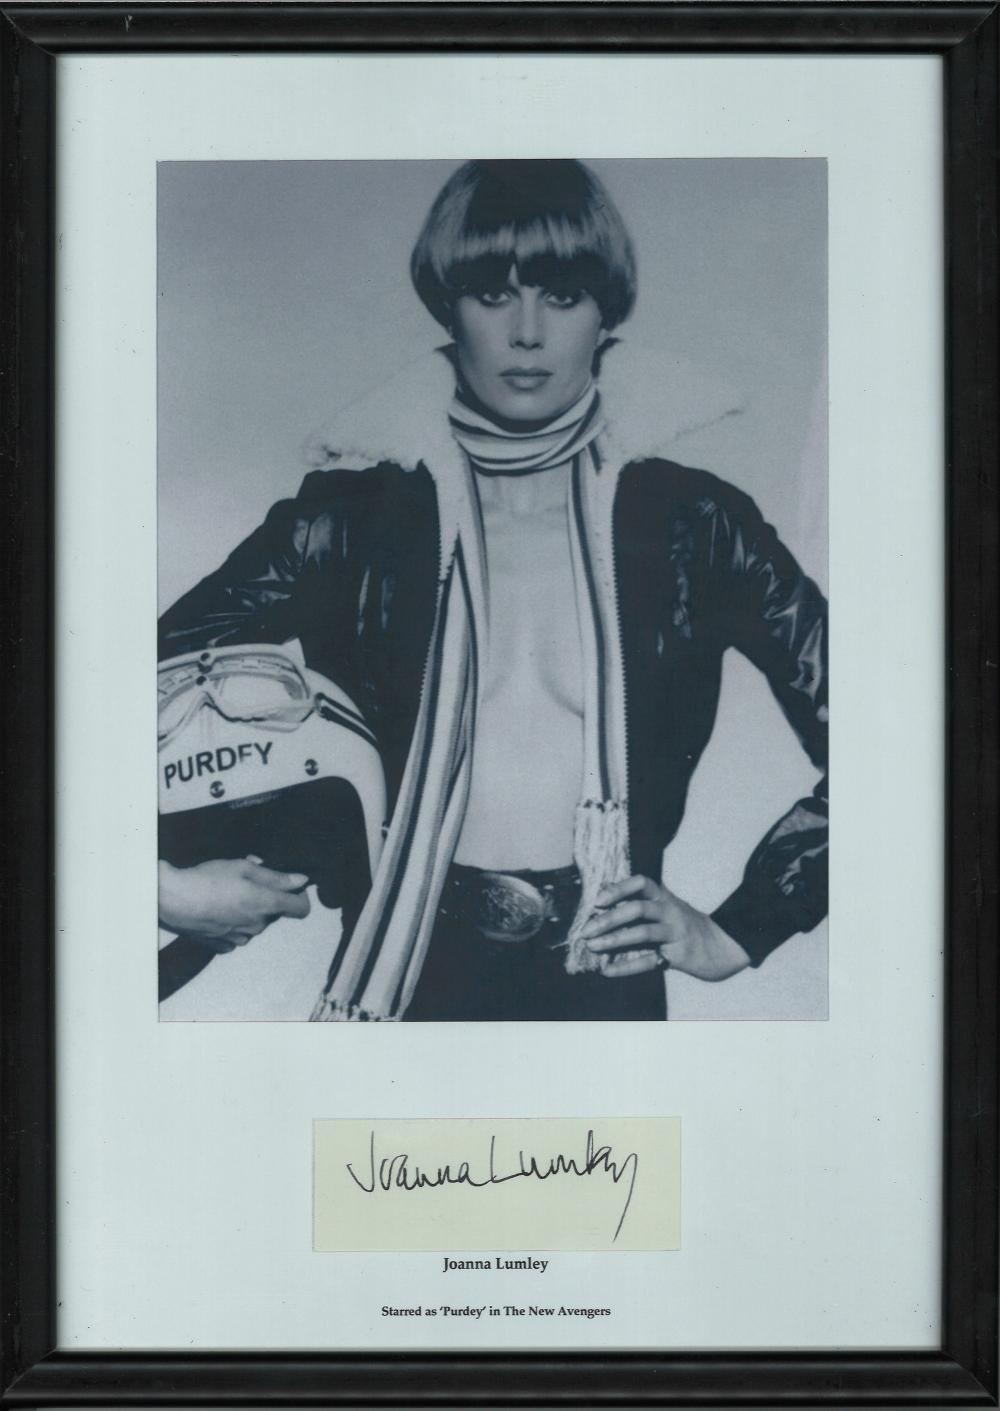 Joanna Lumley signed Black/white photograph in black A4 frame of actress and model Joanna Lumley.